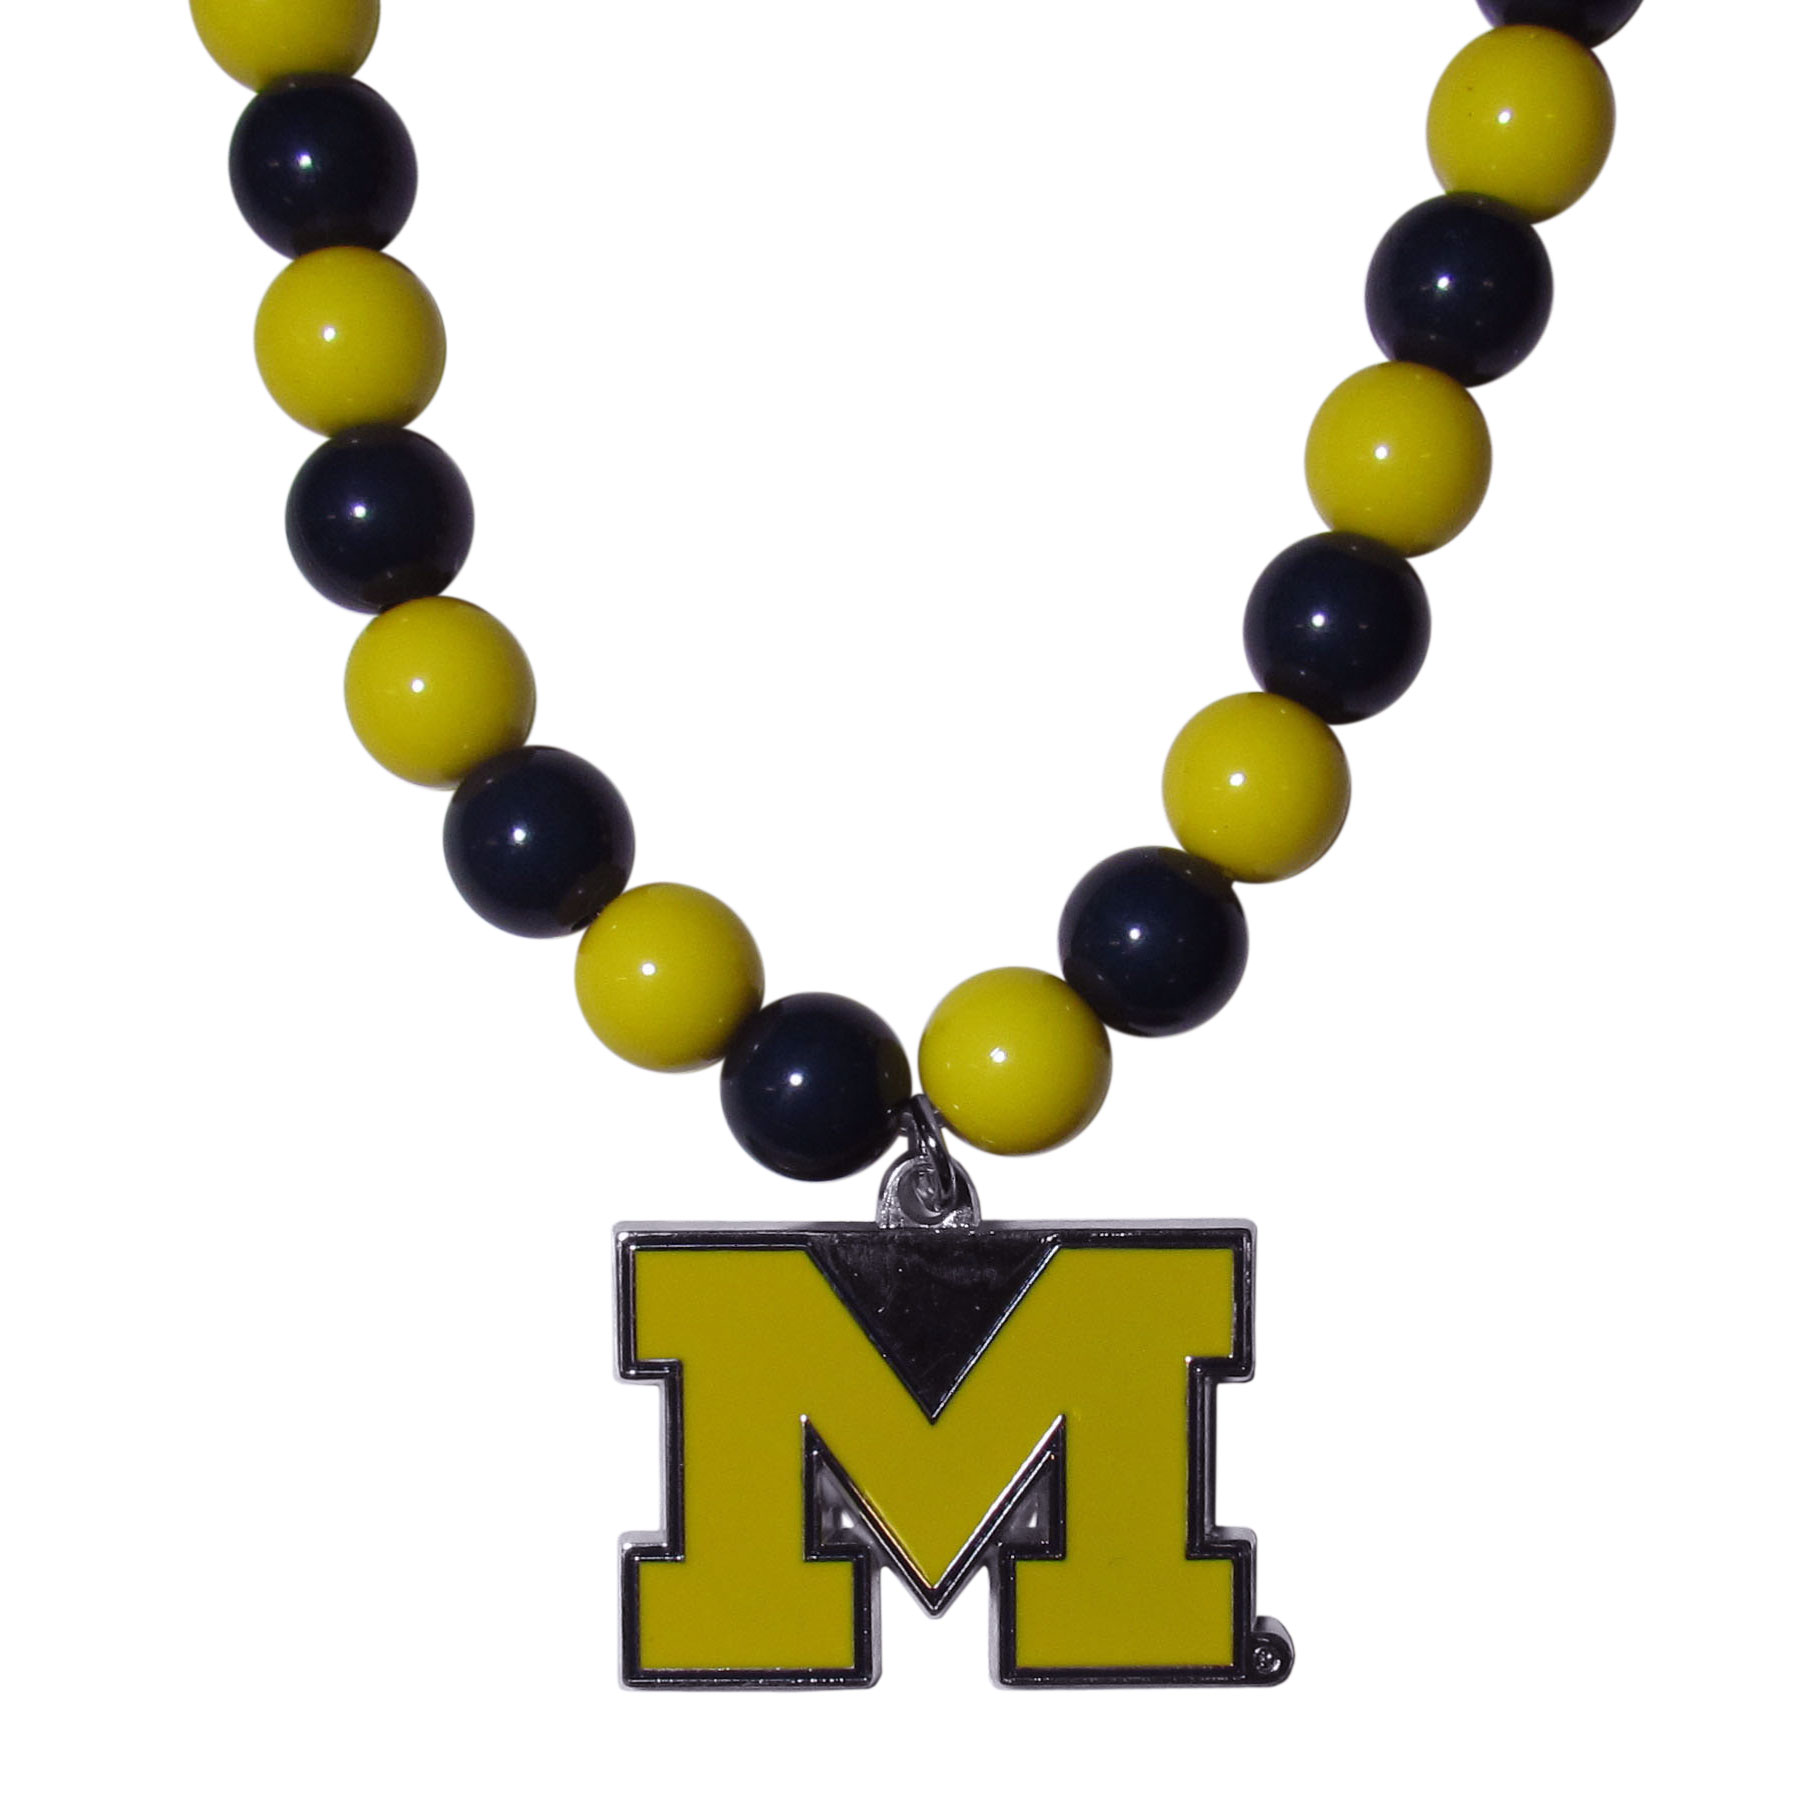 Michigan Wolverines Fan Bead Necklace - Make a big statement with our fan bead necklaces! These brightly colored necklace have a 24 inch string of alternating colored beads with an extra large, high-polish Michigan Wolverines pendant.